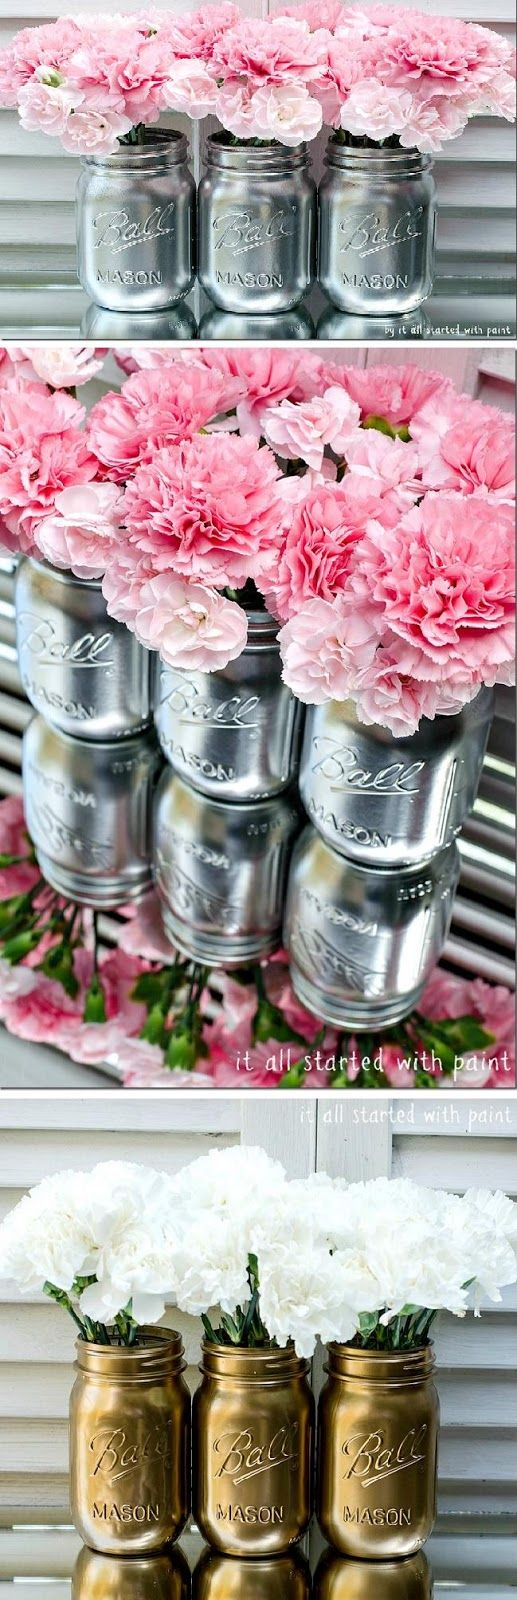 DIY: Metallic mason jars - Love the look of the flowers in it, pink peonies would be great!